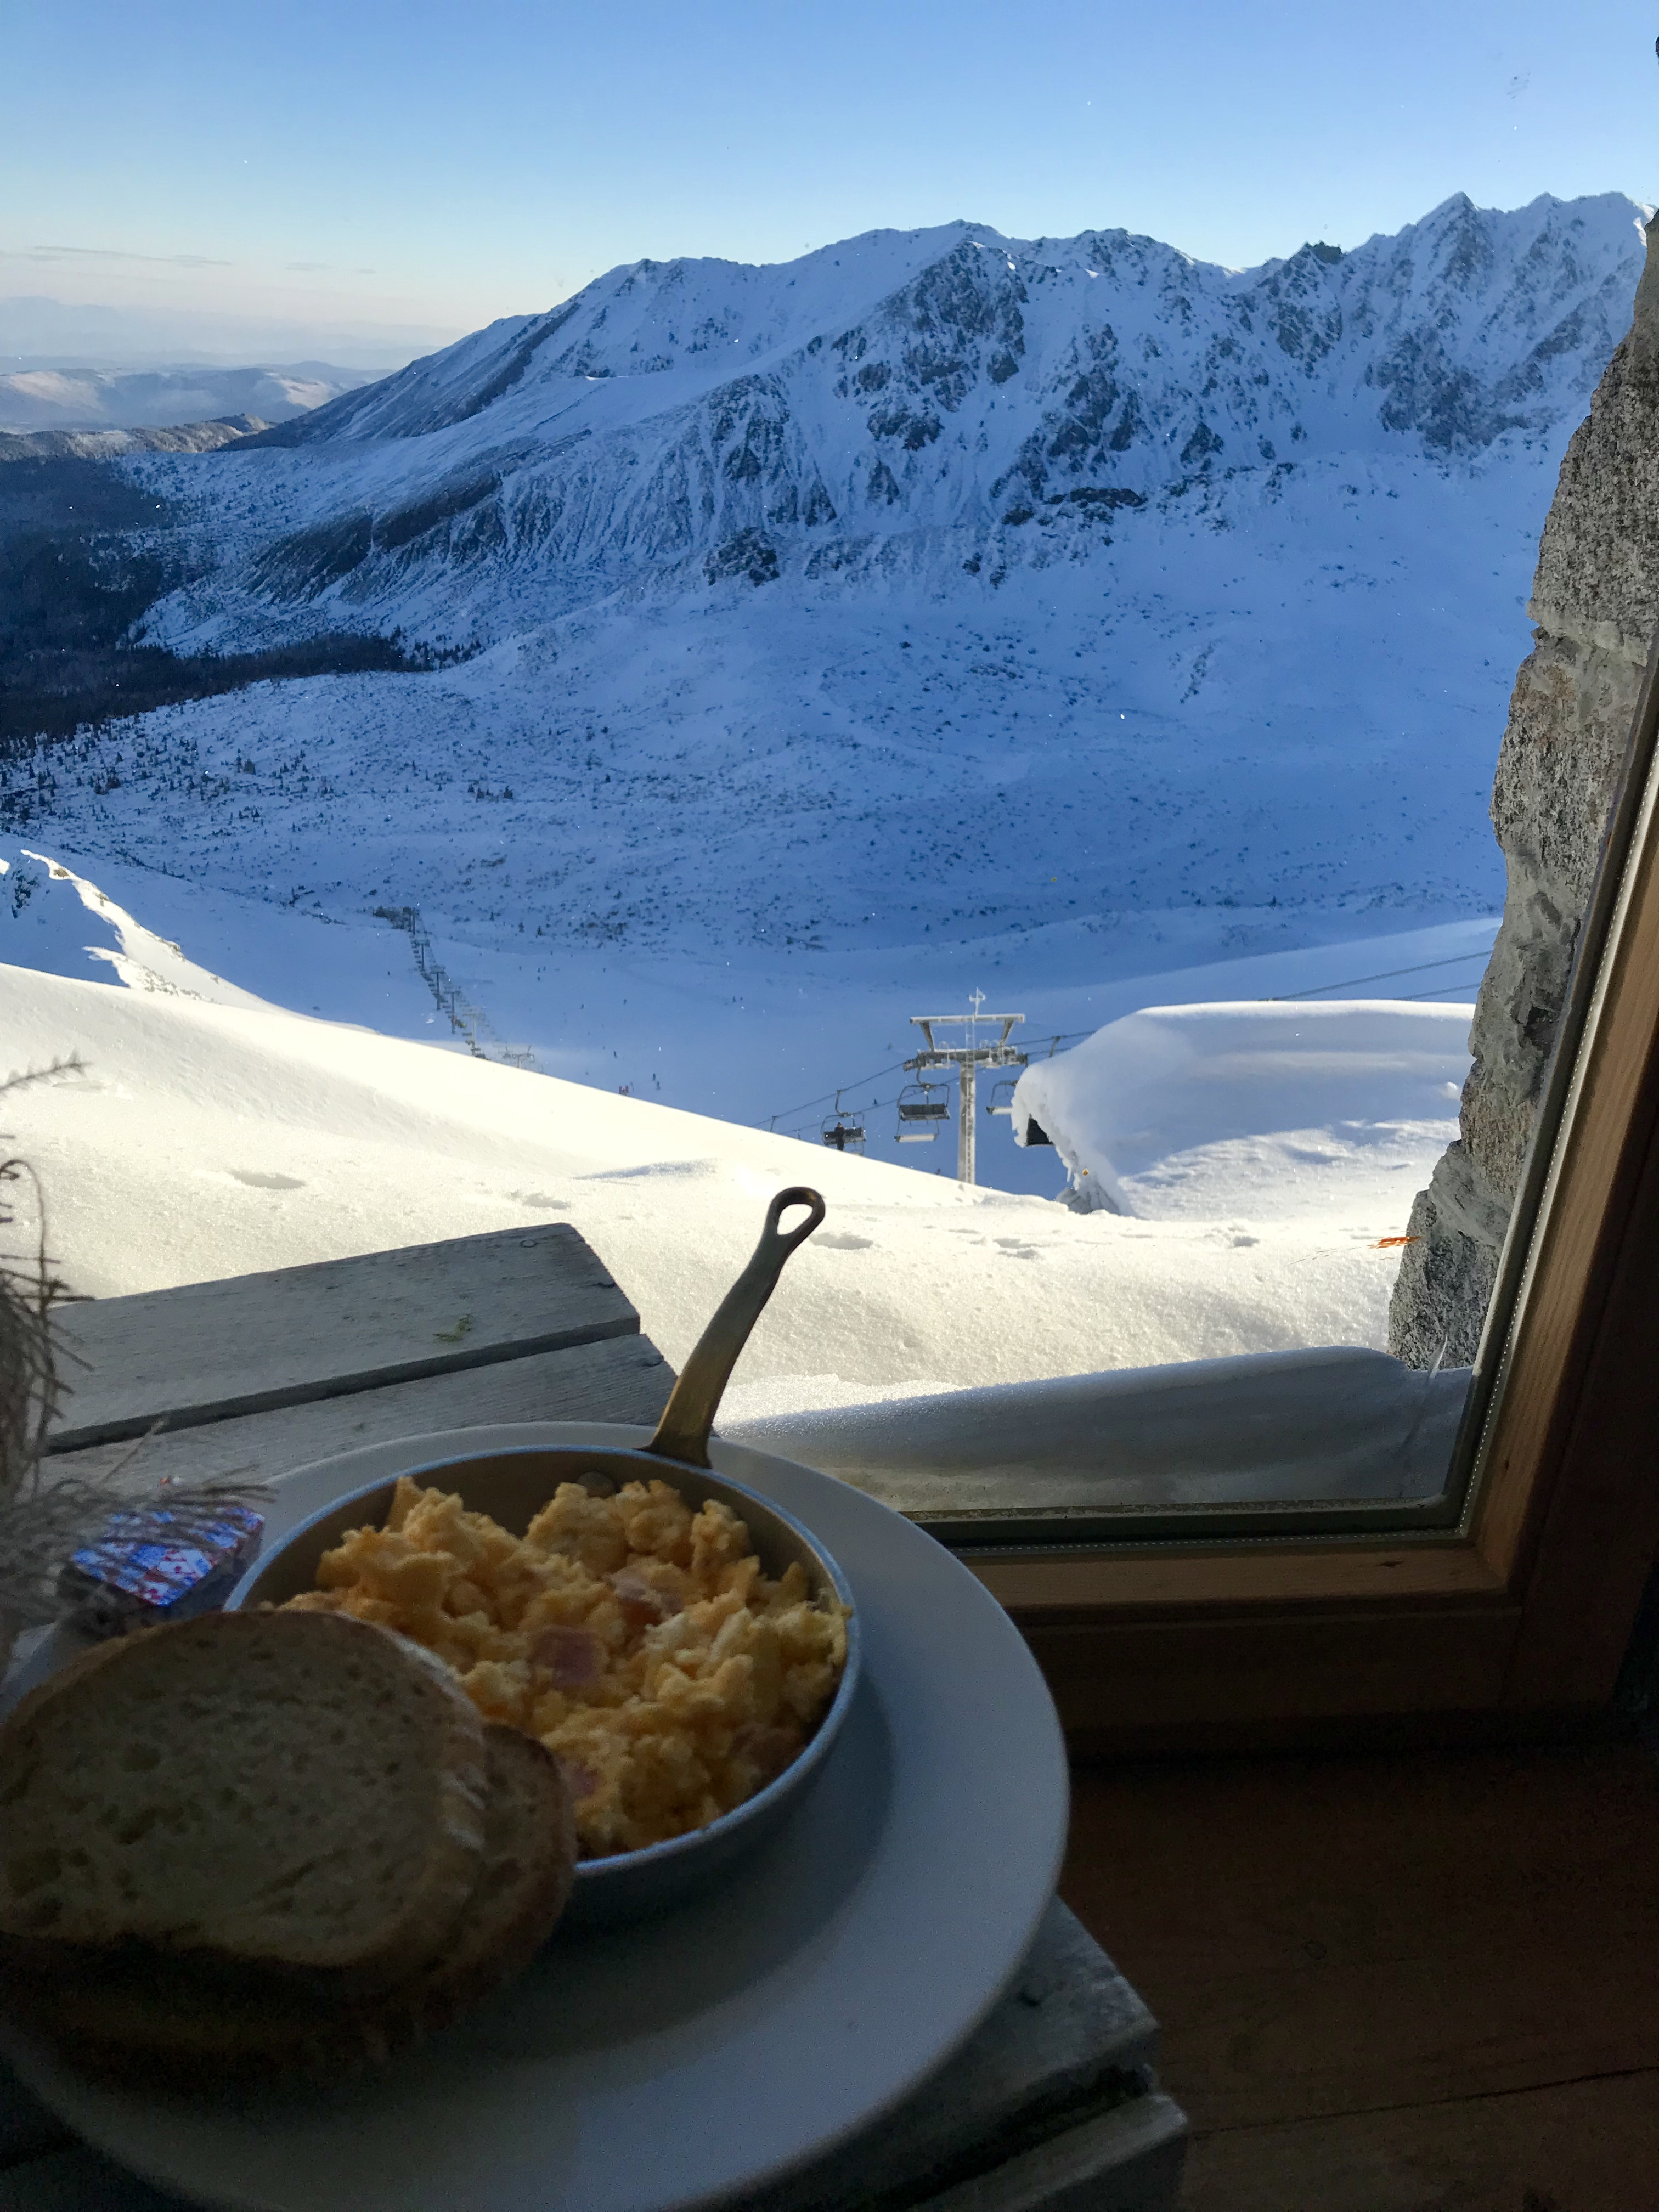 Bacon and Eggs for breakfast at the top of Kasprowy Weirch with White Side Holidays, Ski Poland